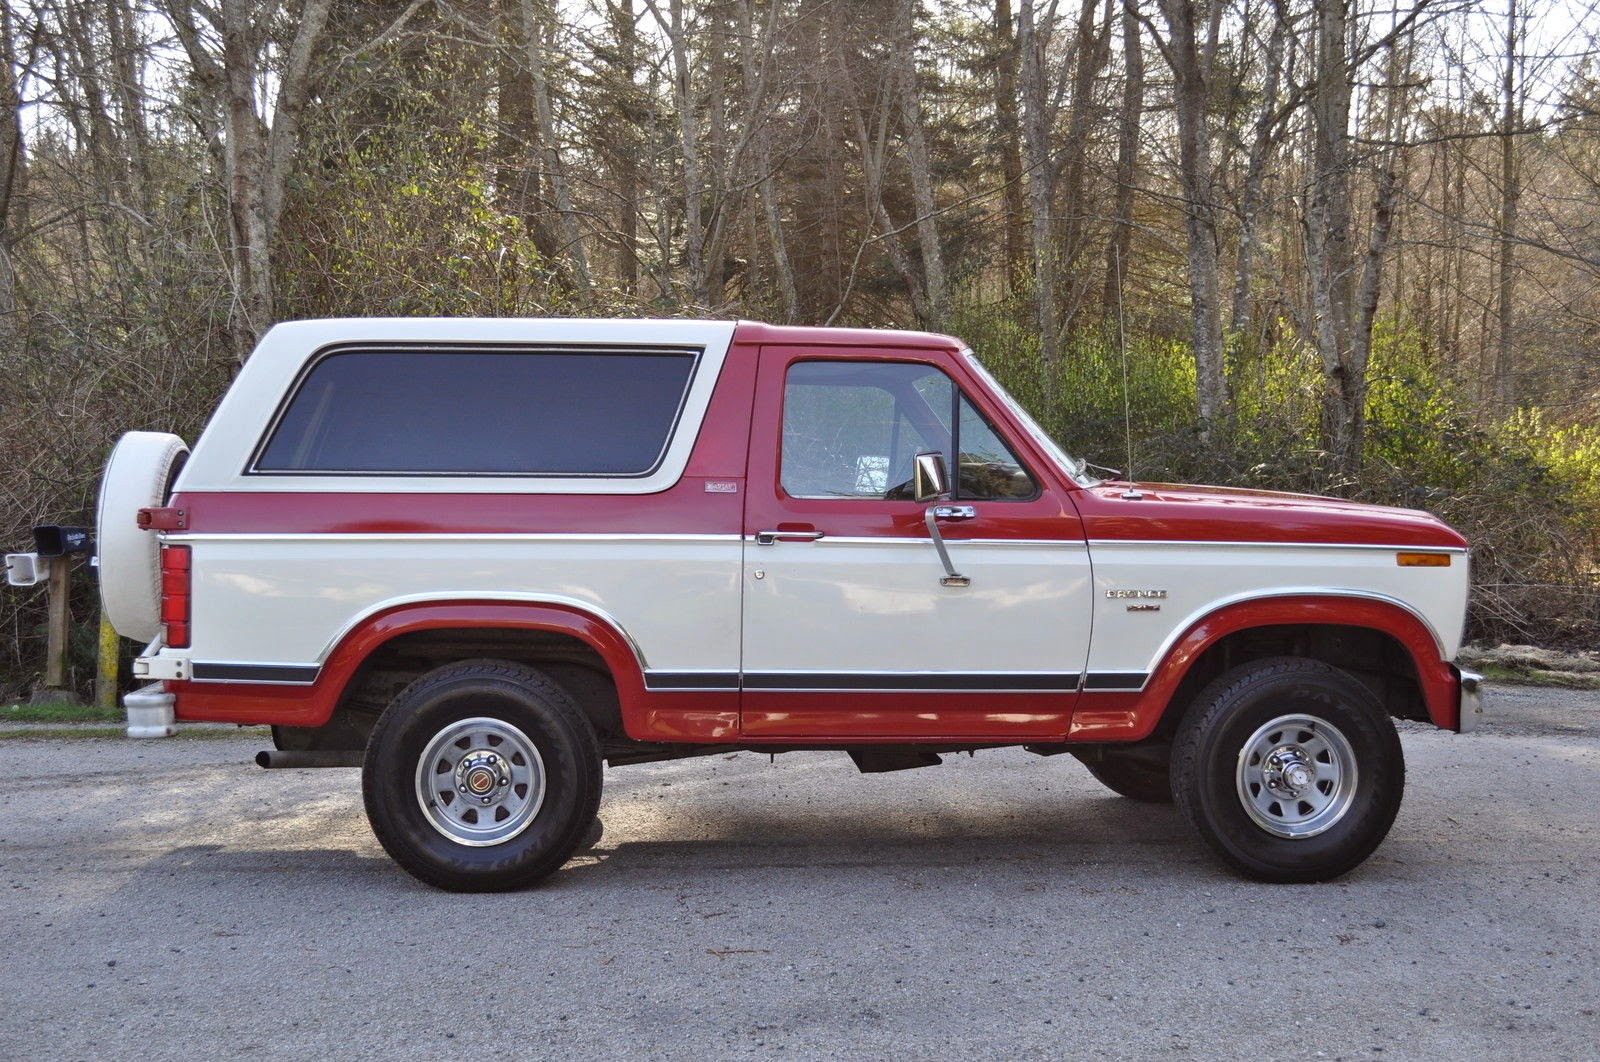 2016 Dodge Ram >> All American Classic Cars: 1982 Ford Bronco XLT Lariat 4x4 2-Door SUV